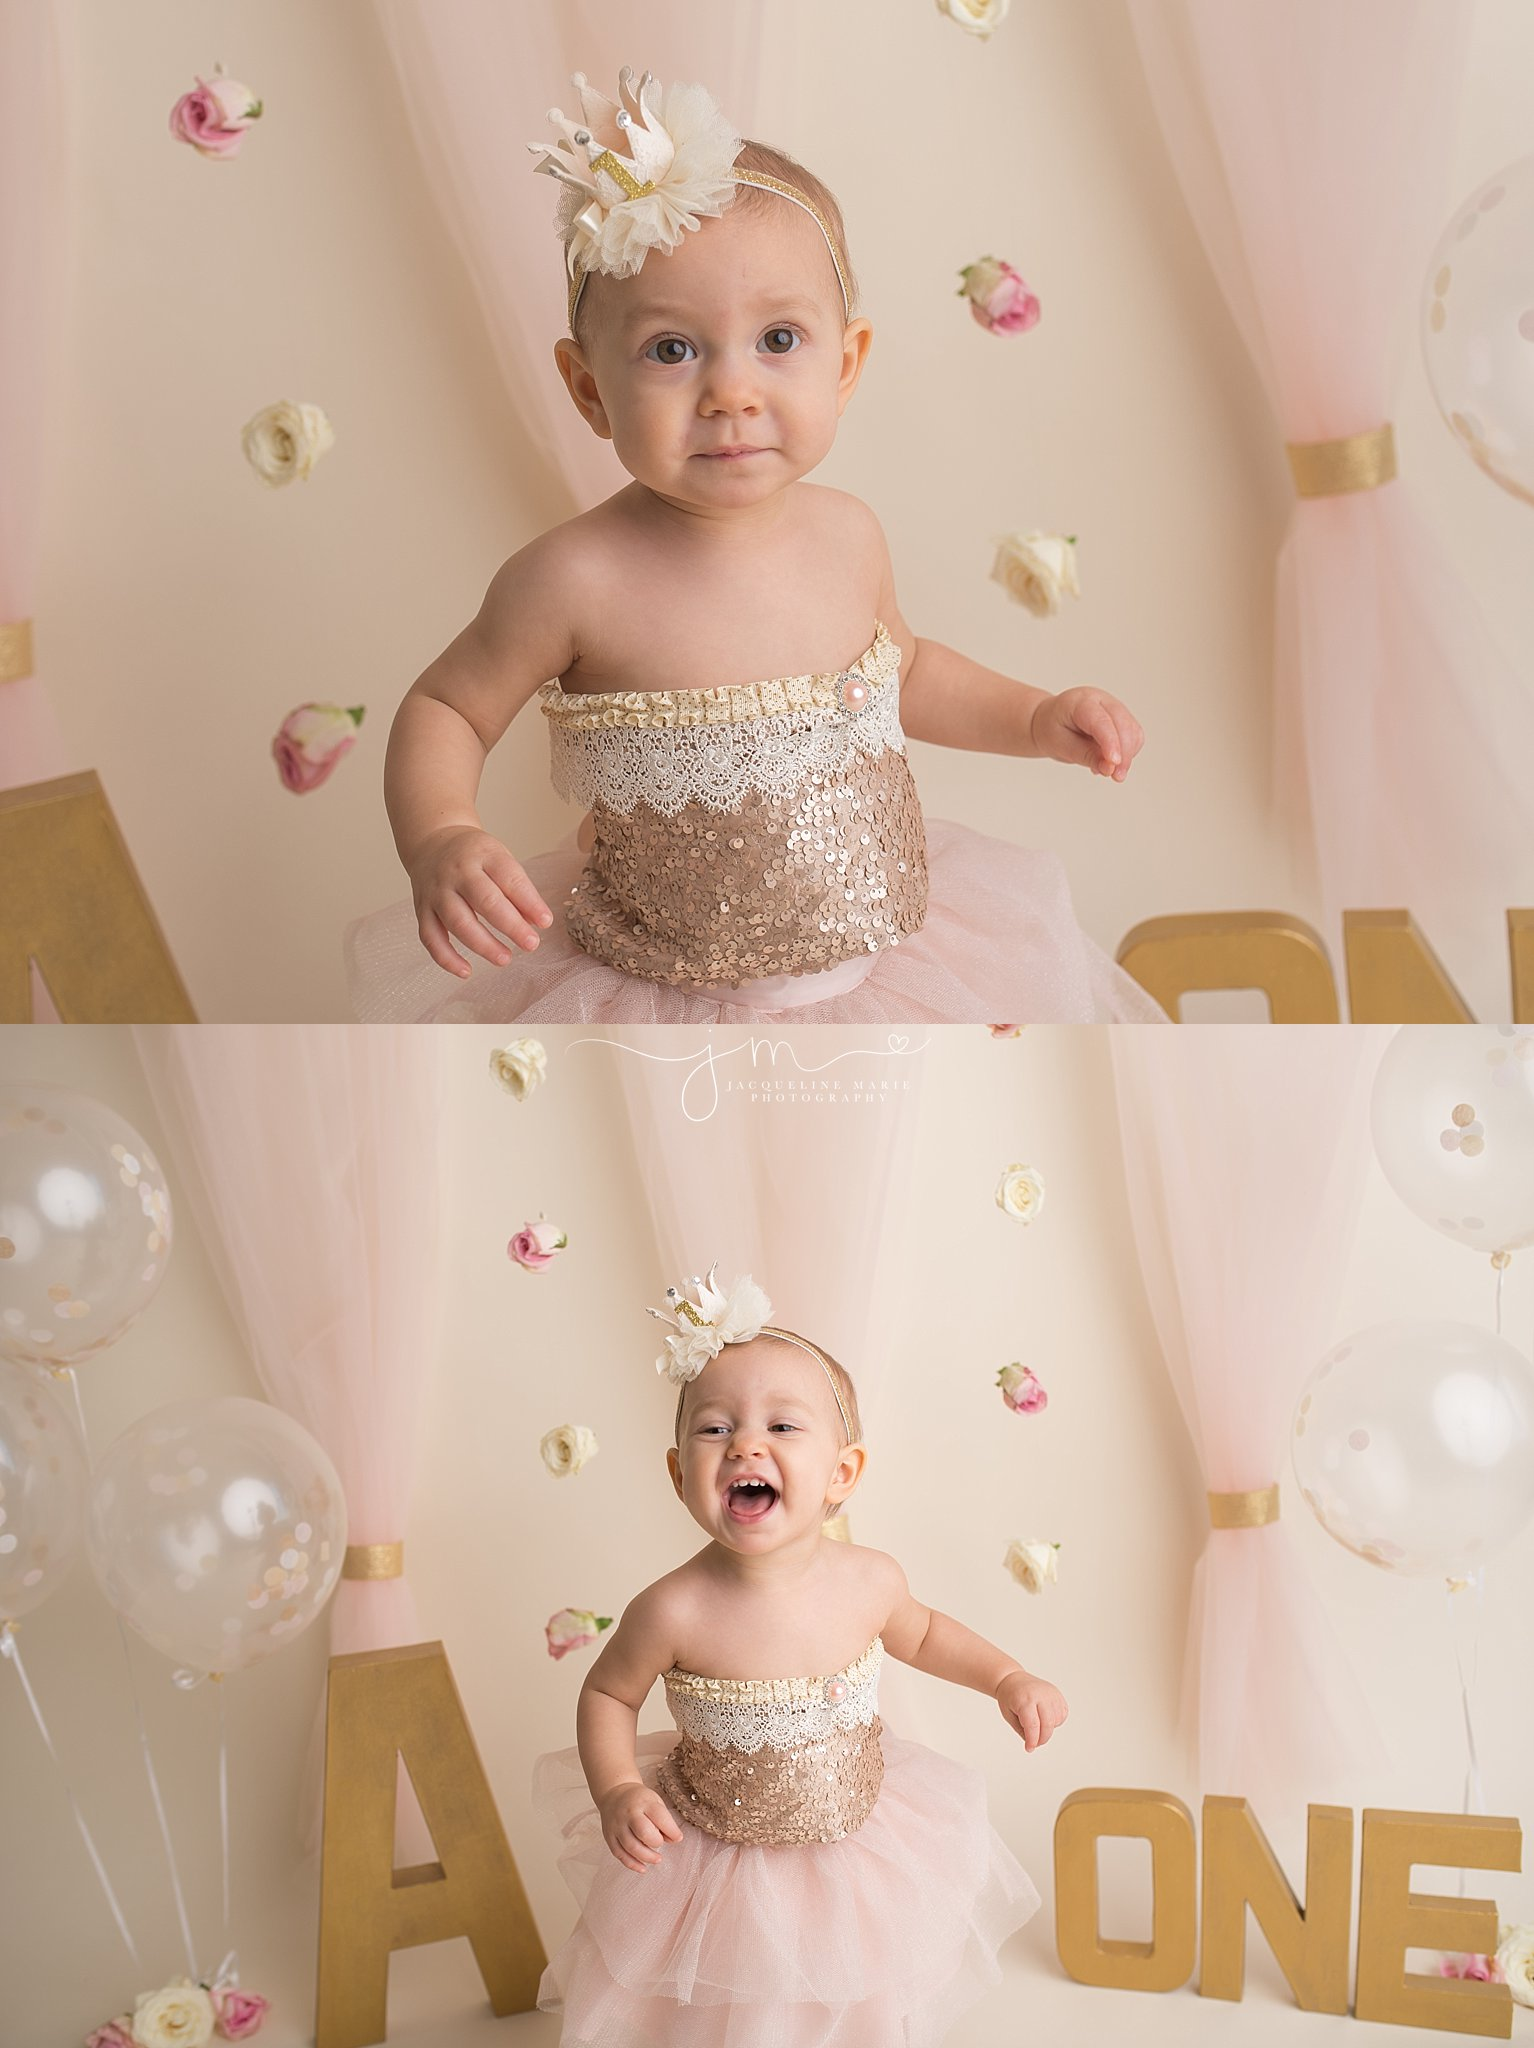 Columbus Ohio baby photographer, Columbus first birthday photographer, Cake smash session, pink and gold first birthday, pink and gold cake smash